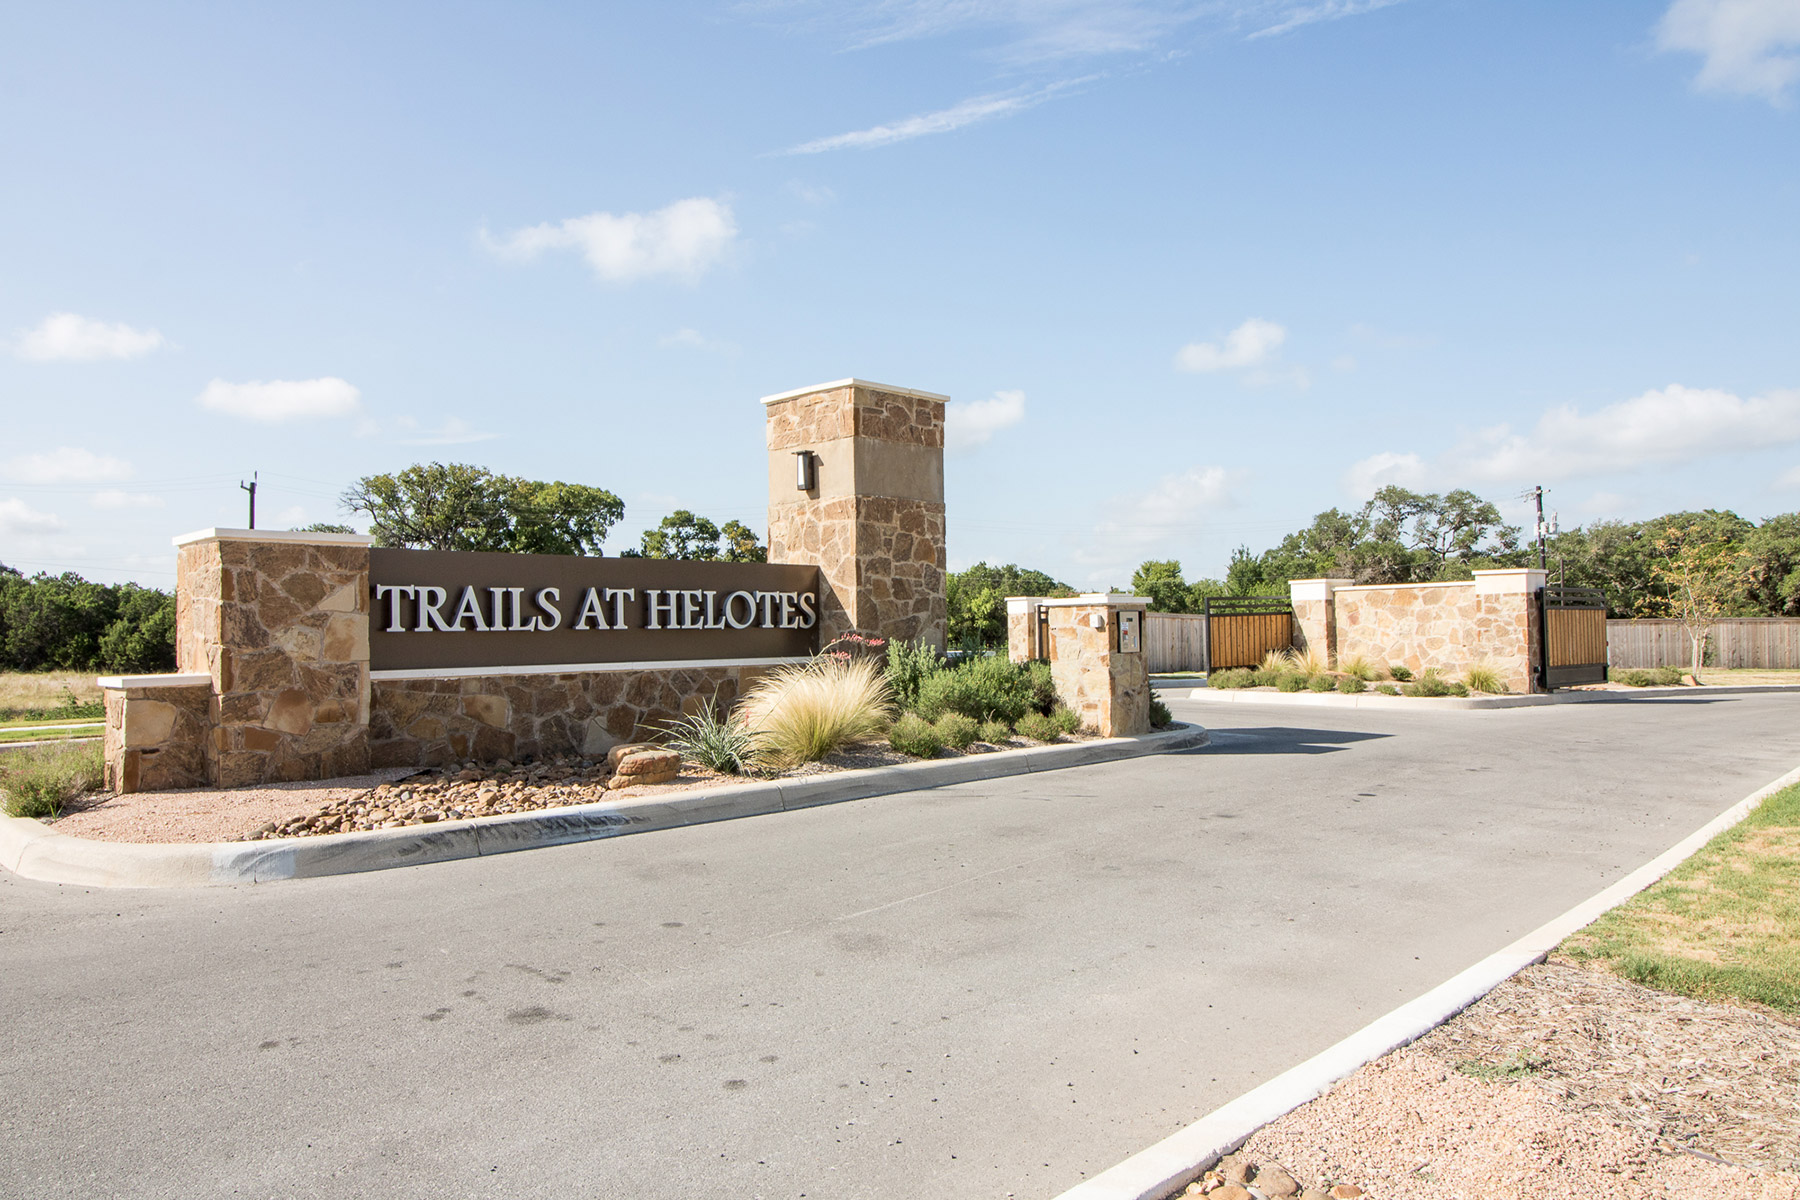 Trails at Helotes